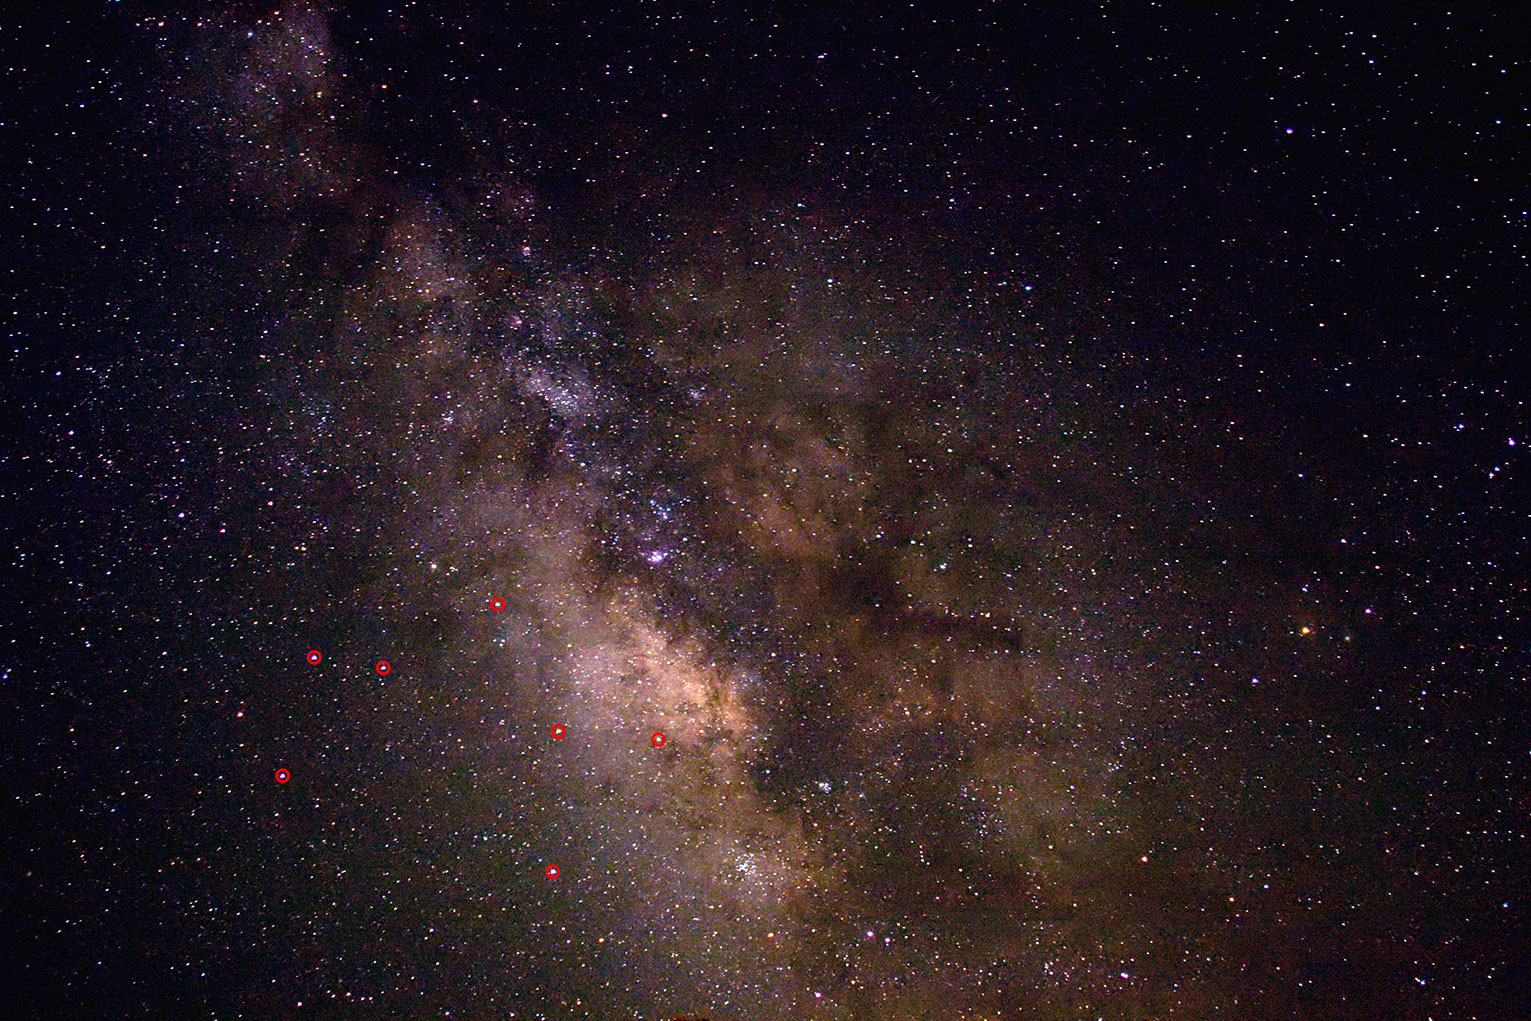 HD Milky Way Galaxy From Earth - Pics about space